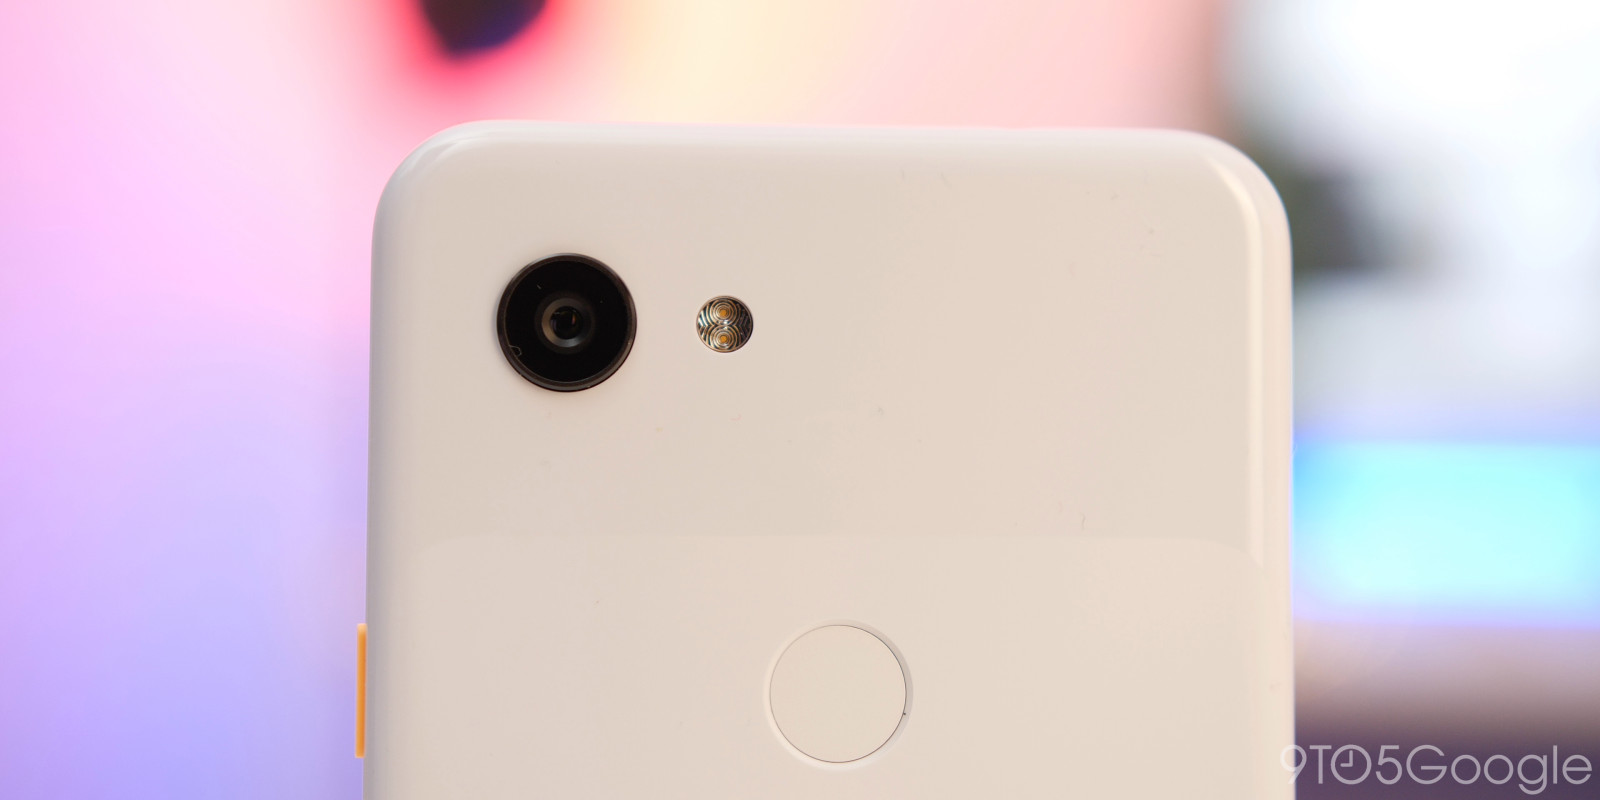 Get Google's unlocked Pixel 3a XL at one of its best prices: $380 ($100 off)